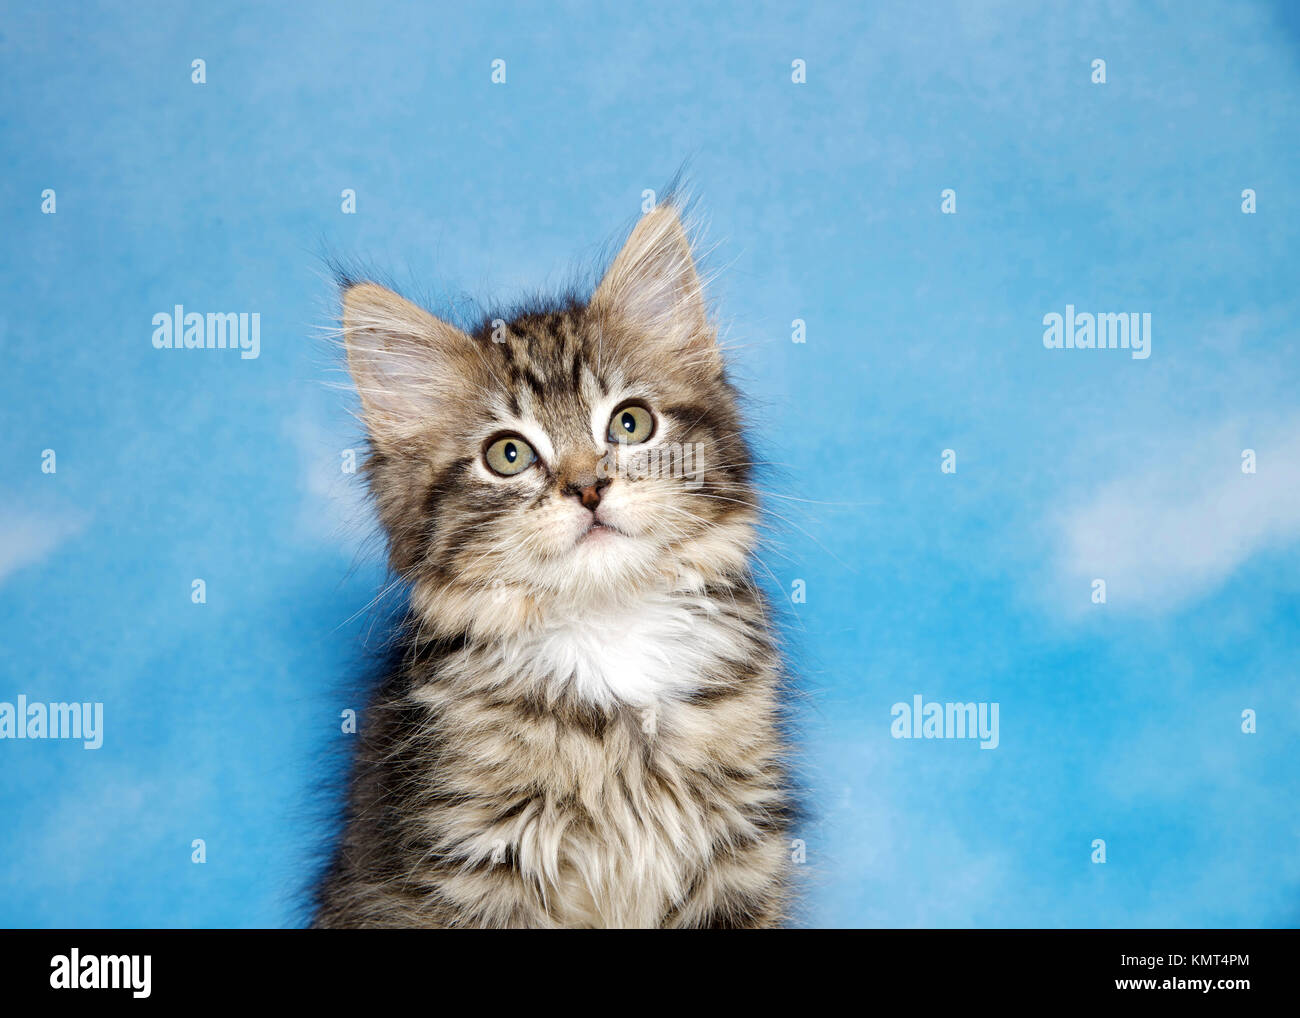 Portrait of a small black tan and white tabby kitten against a blue background, sky with clouds. Looking up to viewers - Stock Image